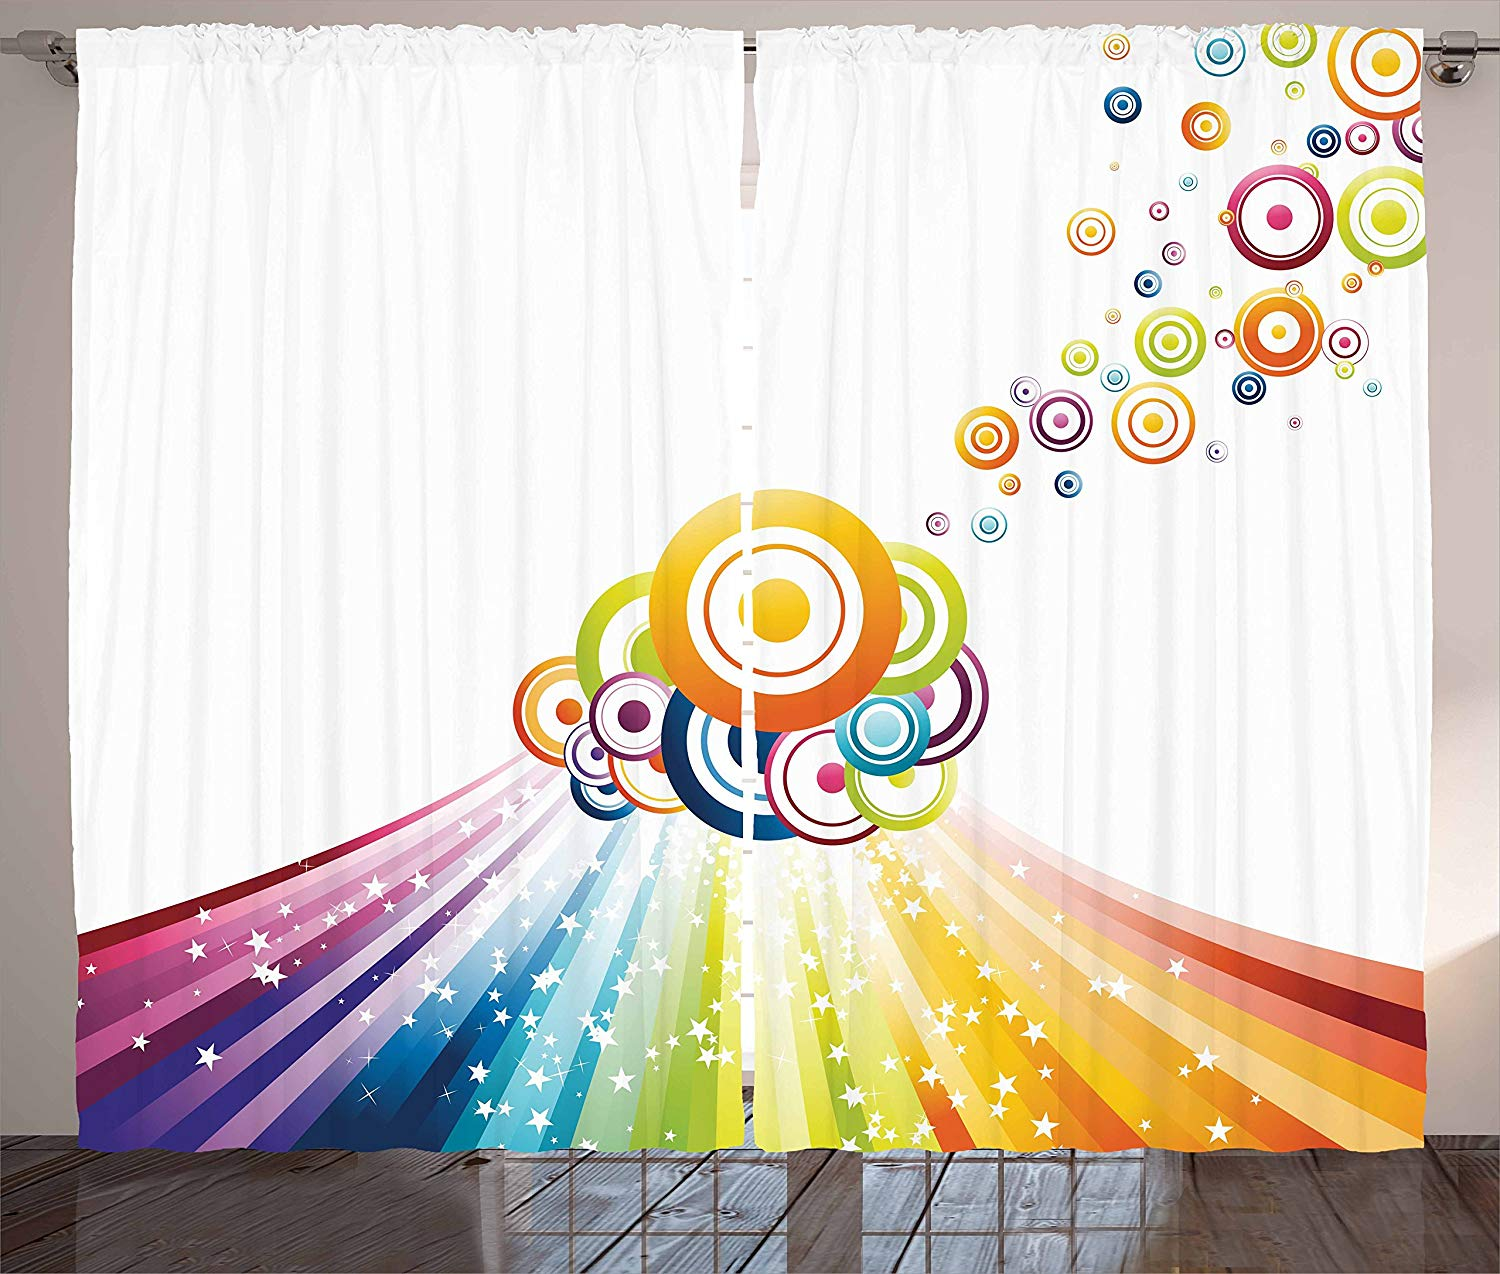 Vintage Rainbow Curtains Colorful Stripes Wave And Bullseye Circles Pattern With Stars Illustration Living Room Bedroom Window